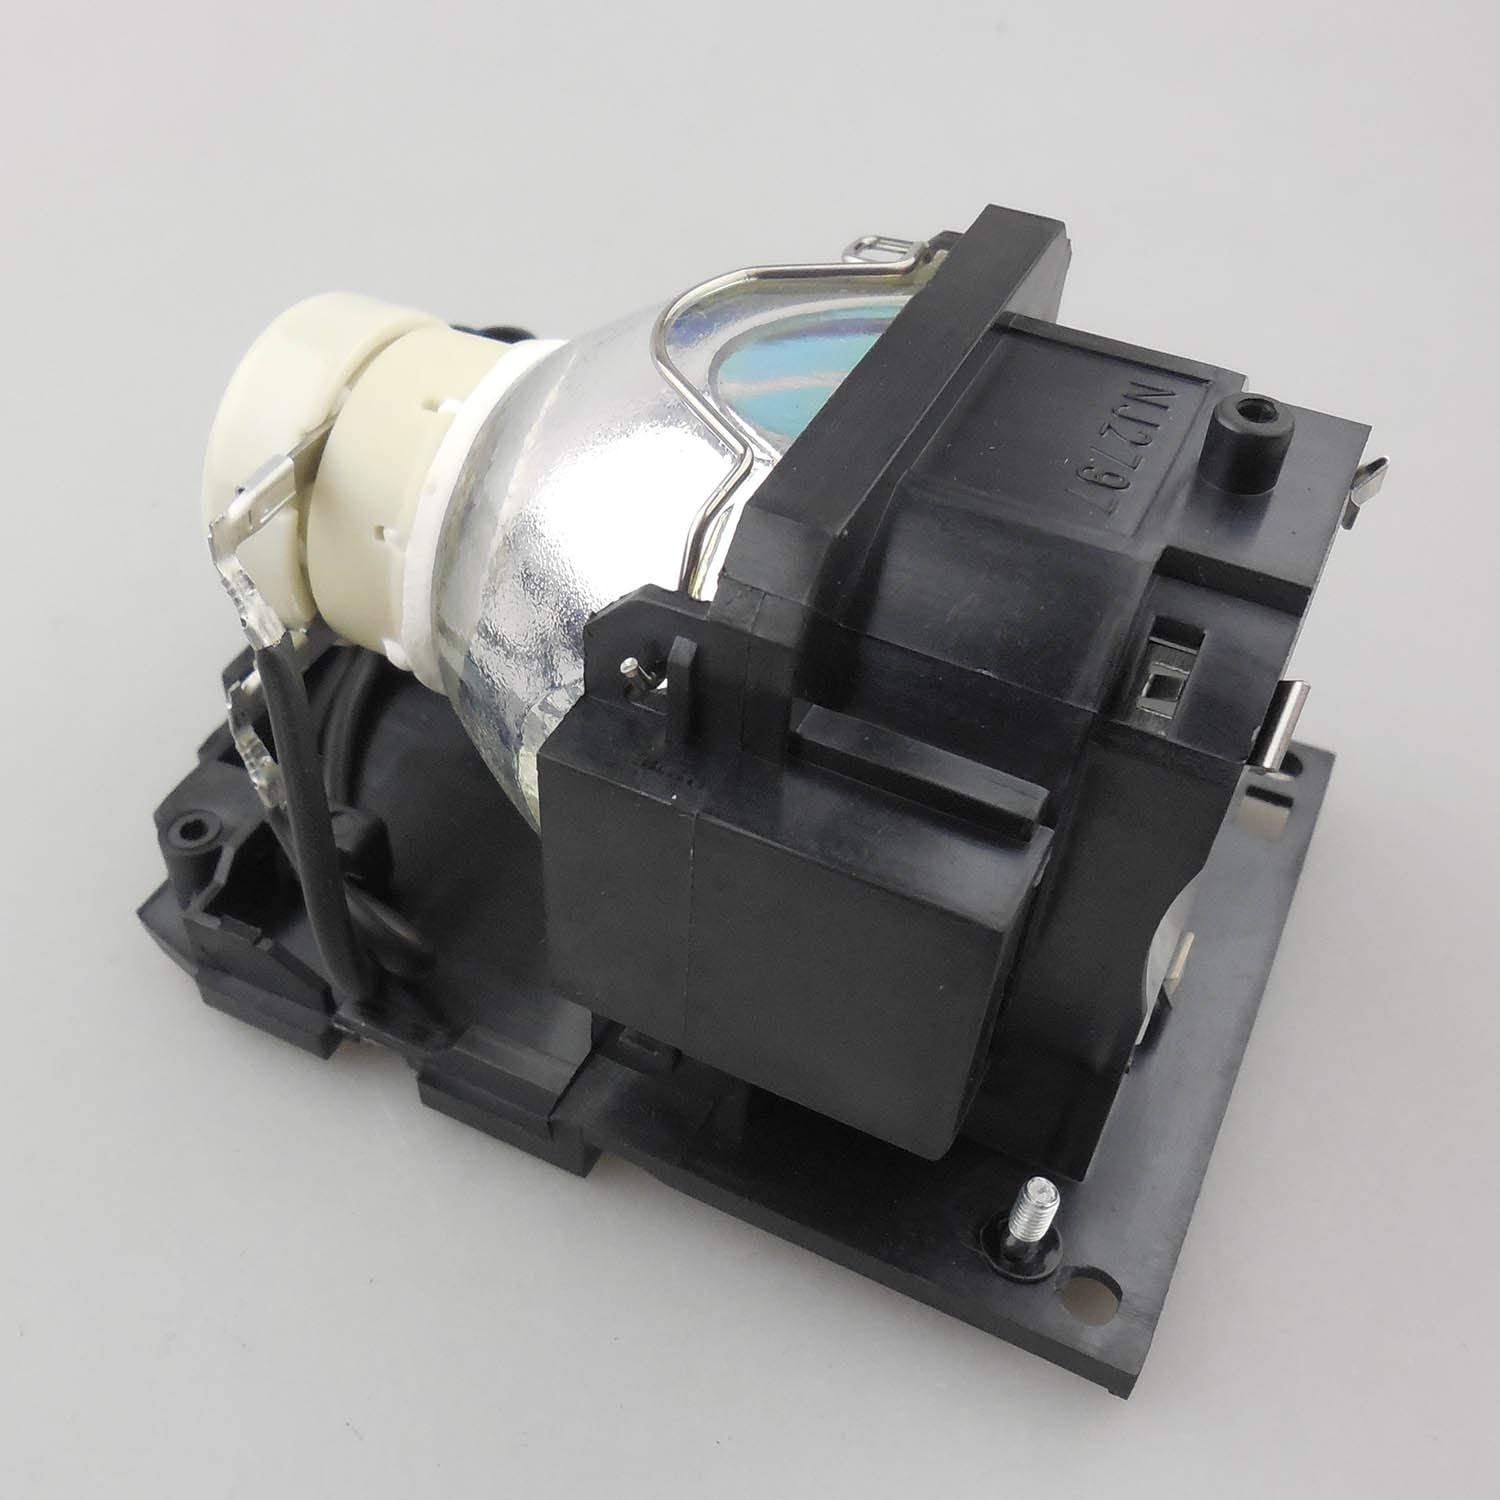 CTLAMP DT01433 Professional Replacement Projector Lamp with Housing Compatible with Hitachi CP-EX250//CP-EX250N//CP-EX300